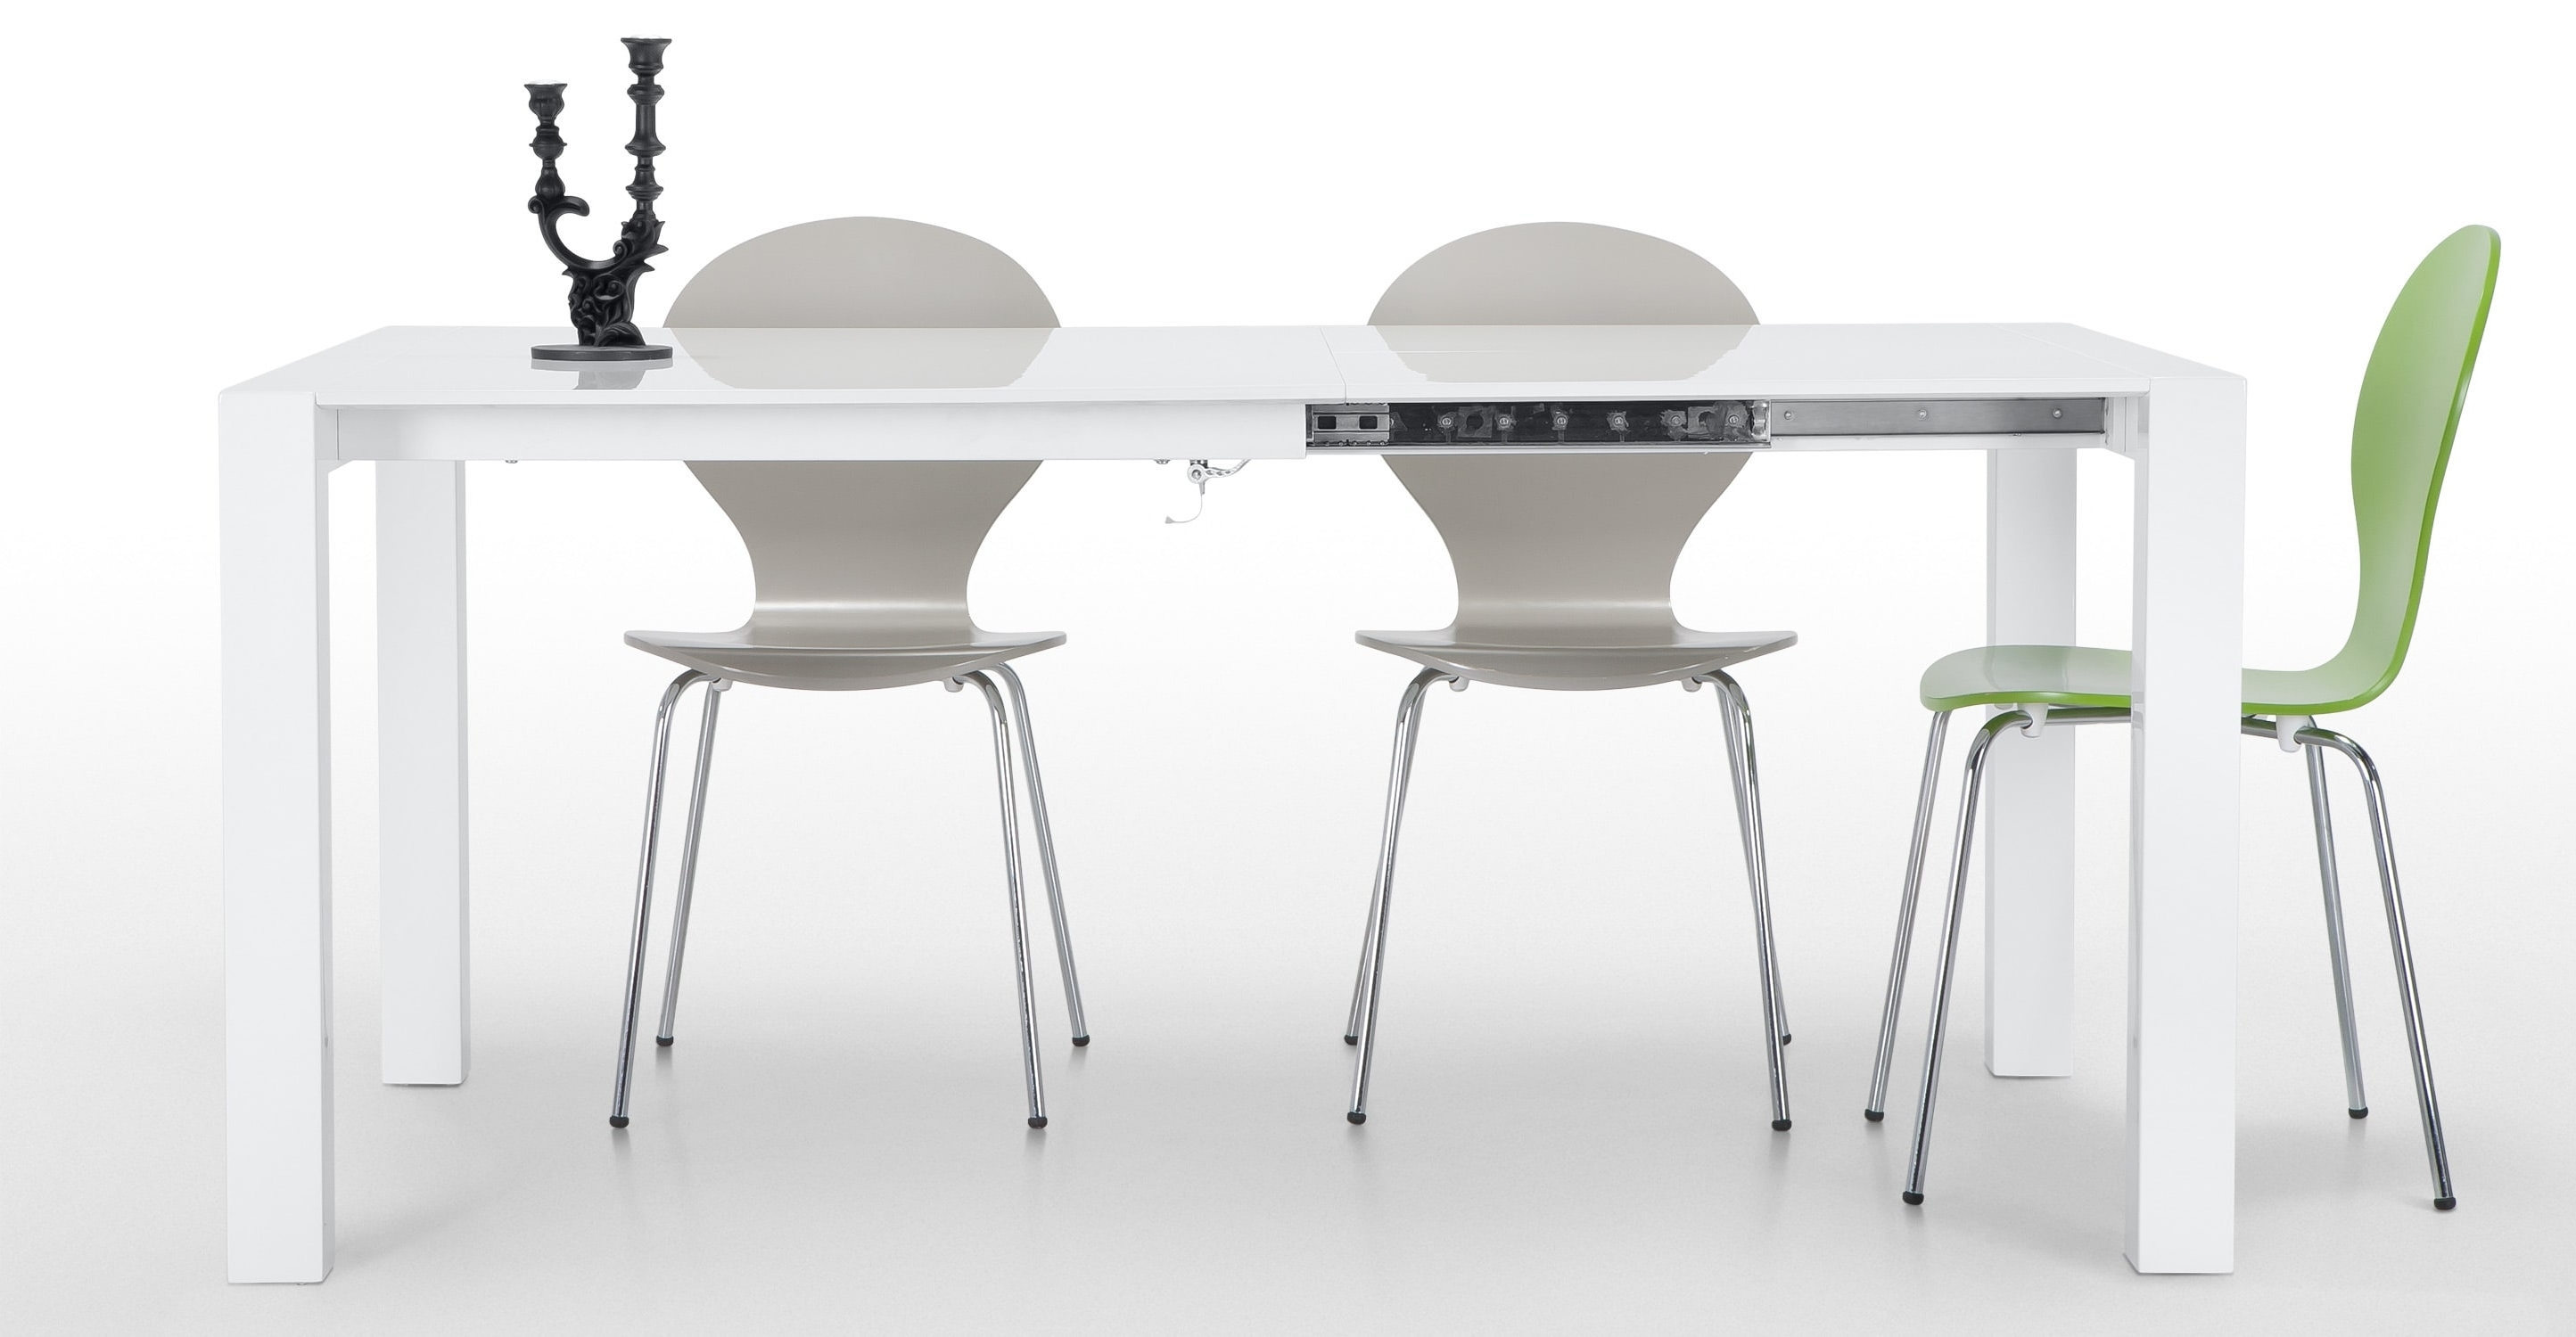 Popular Bramante Square Extending Dining Table, White, White • Sofas Etc Inside White Square Extending Dining Tables (View 12 of 25)